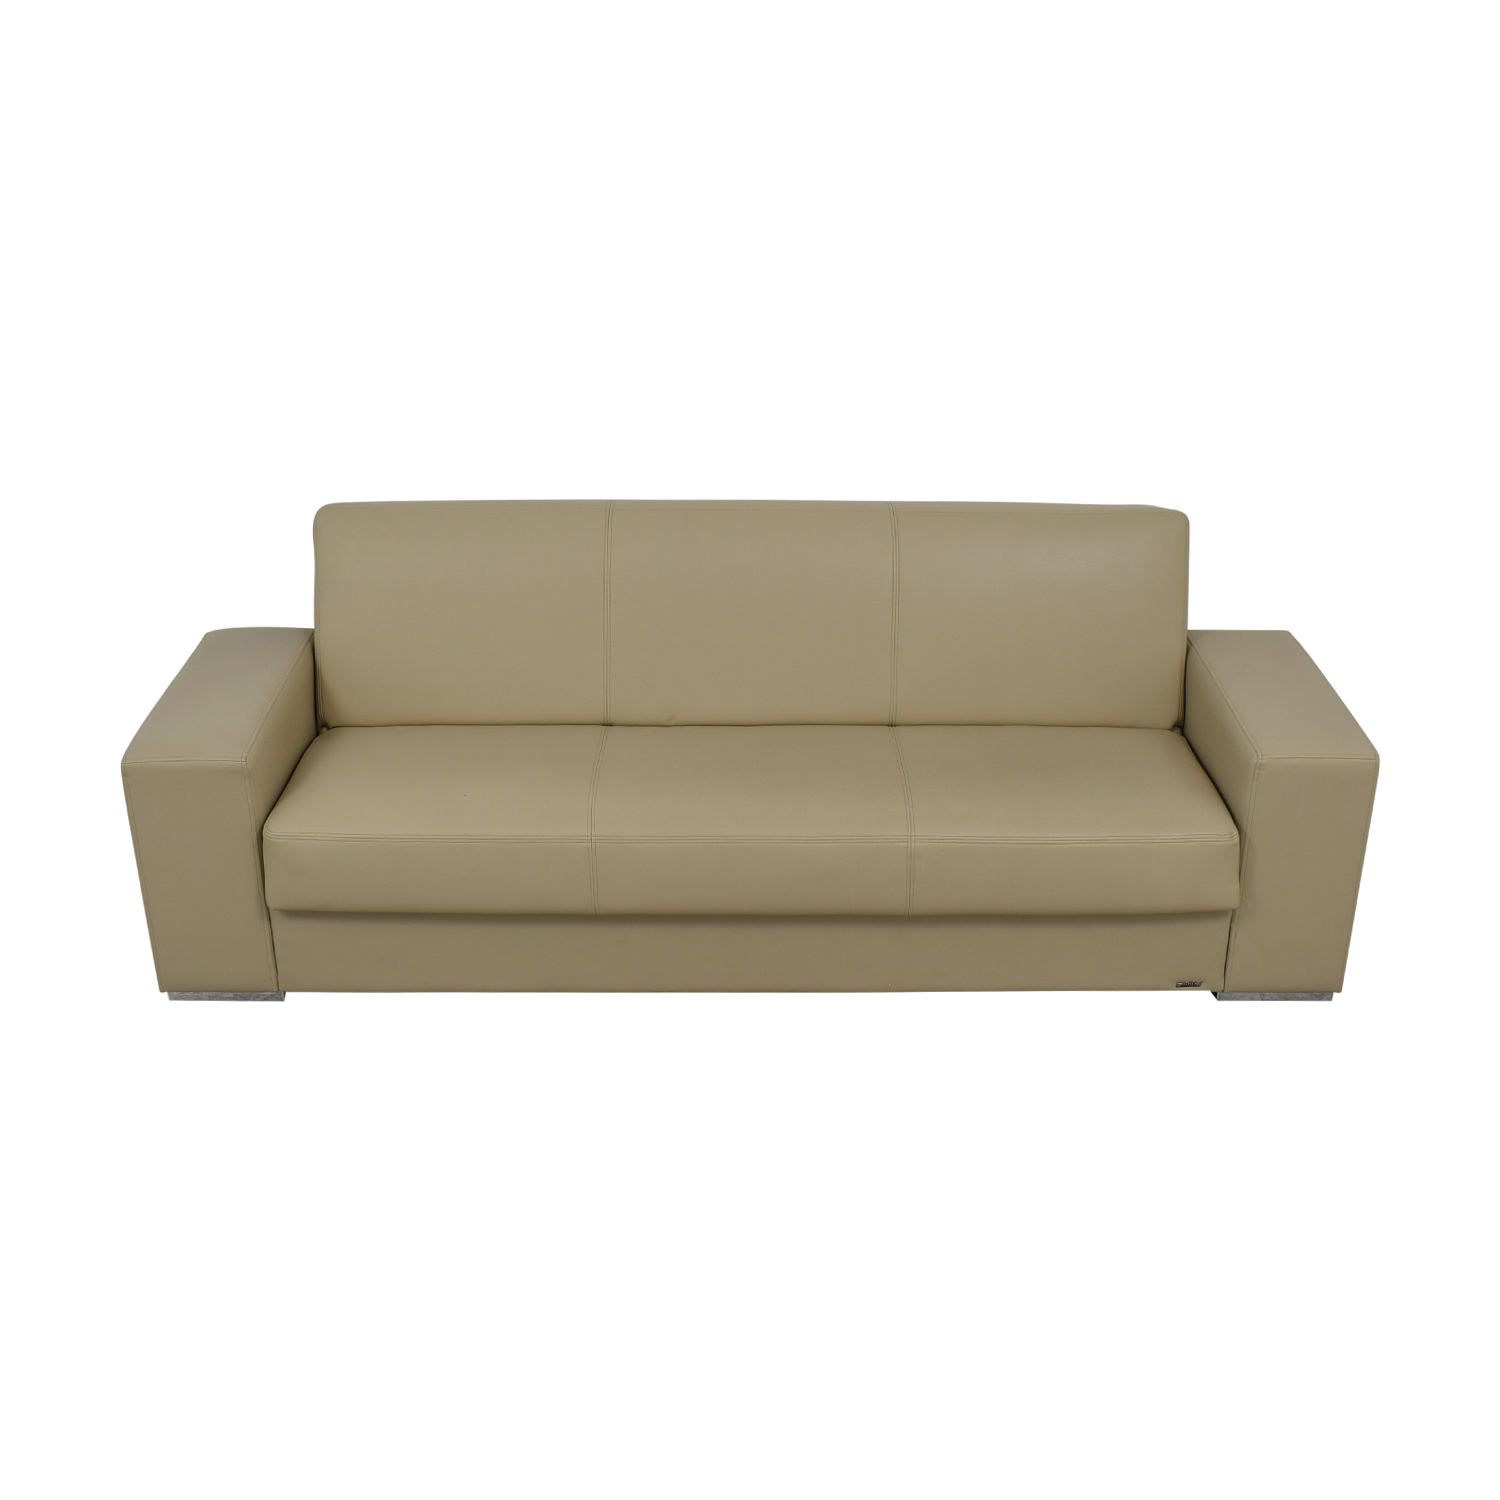 buy Istikbal Cream Convertible Sofa Istikbal